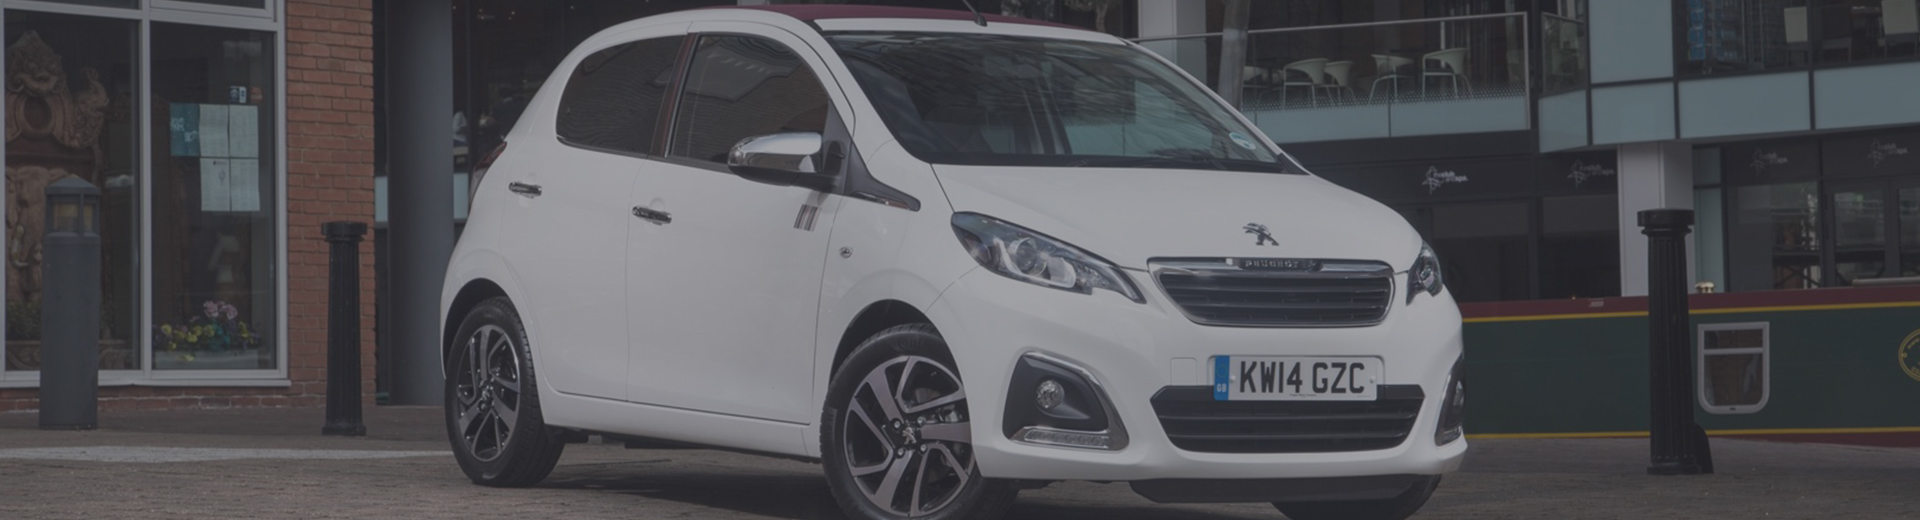 PEUGEOT 108 lease deals - Intelligent Car Leasing